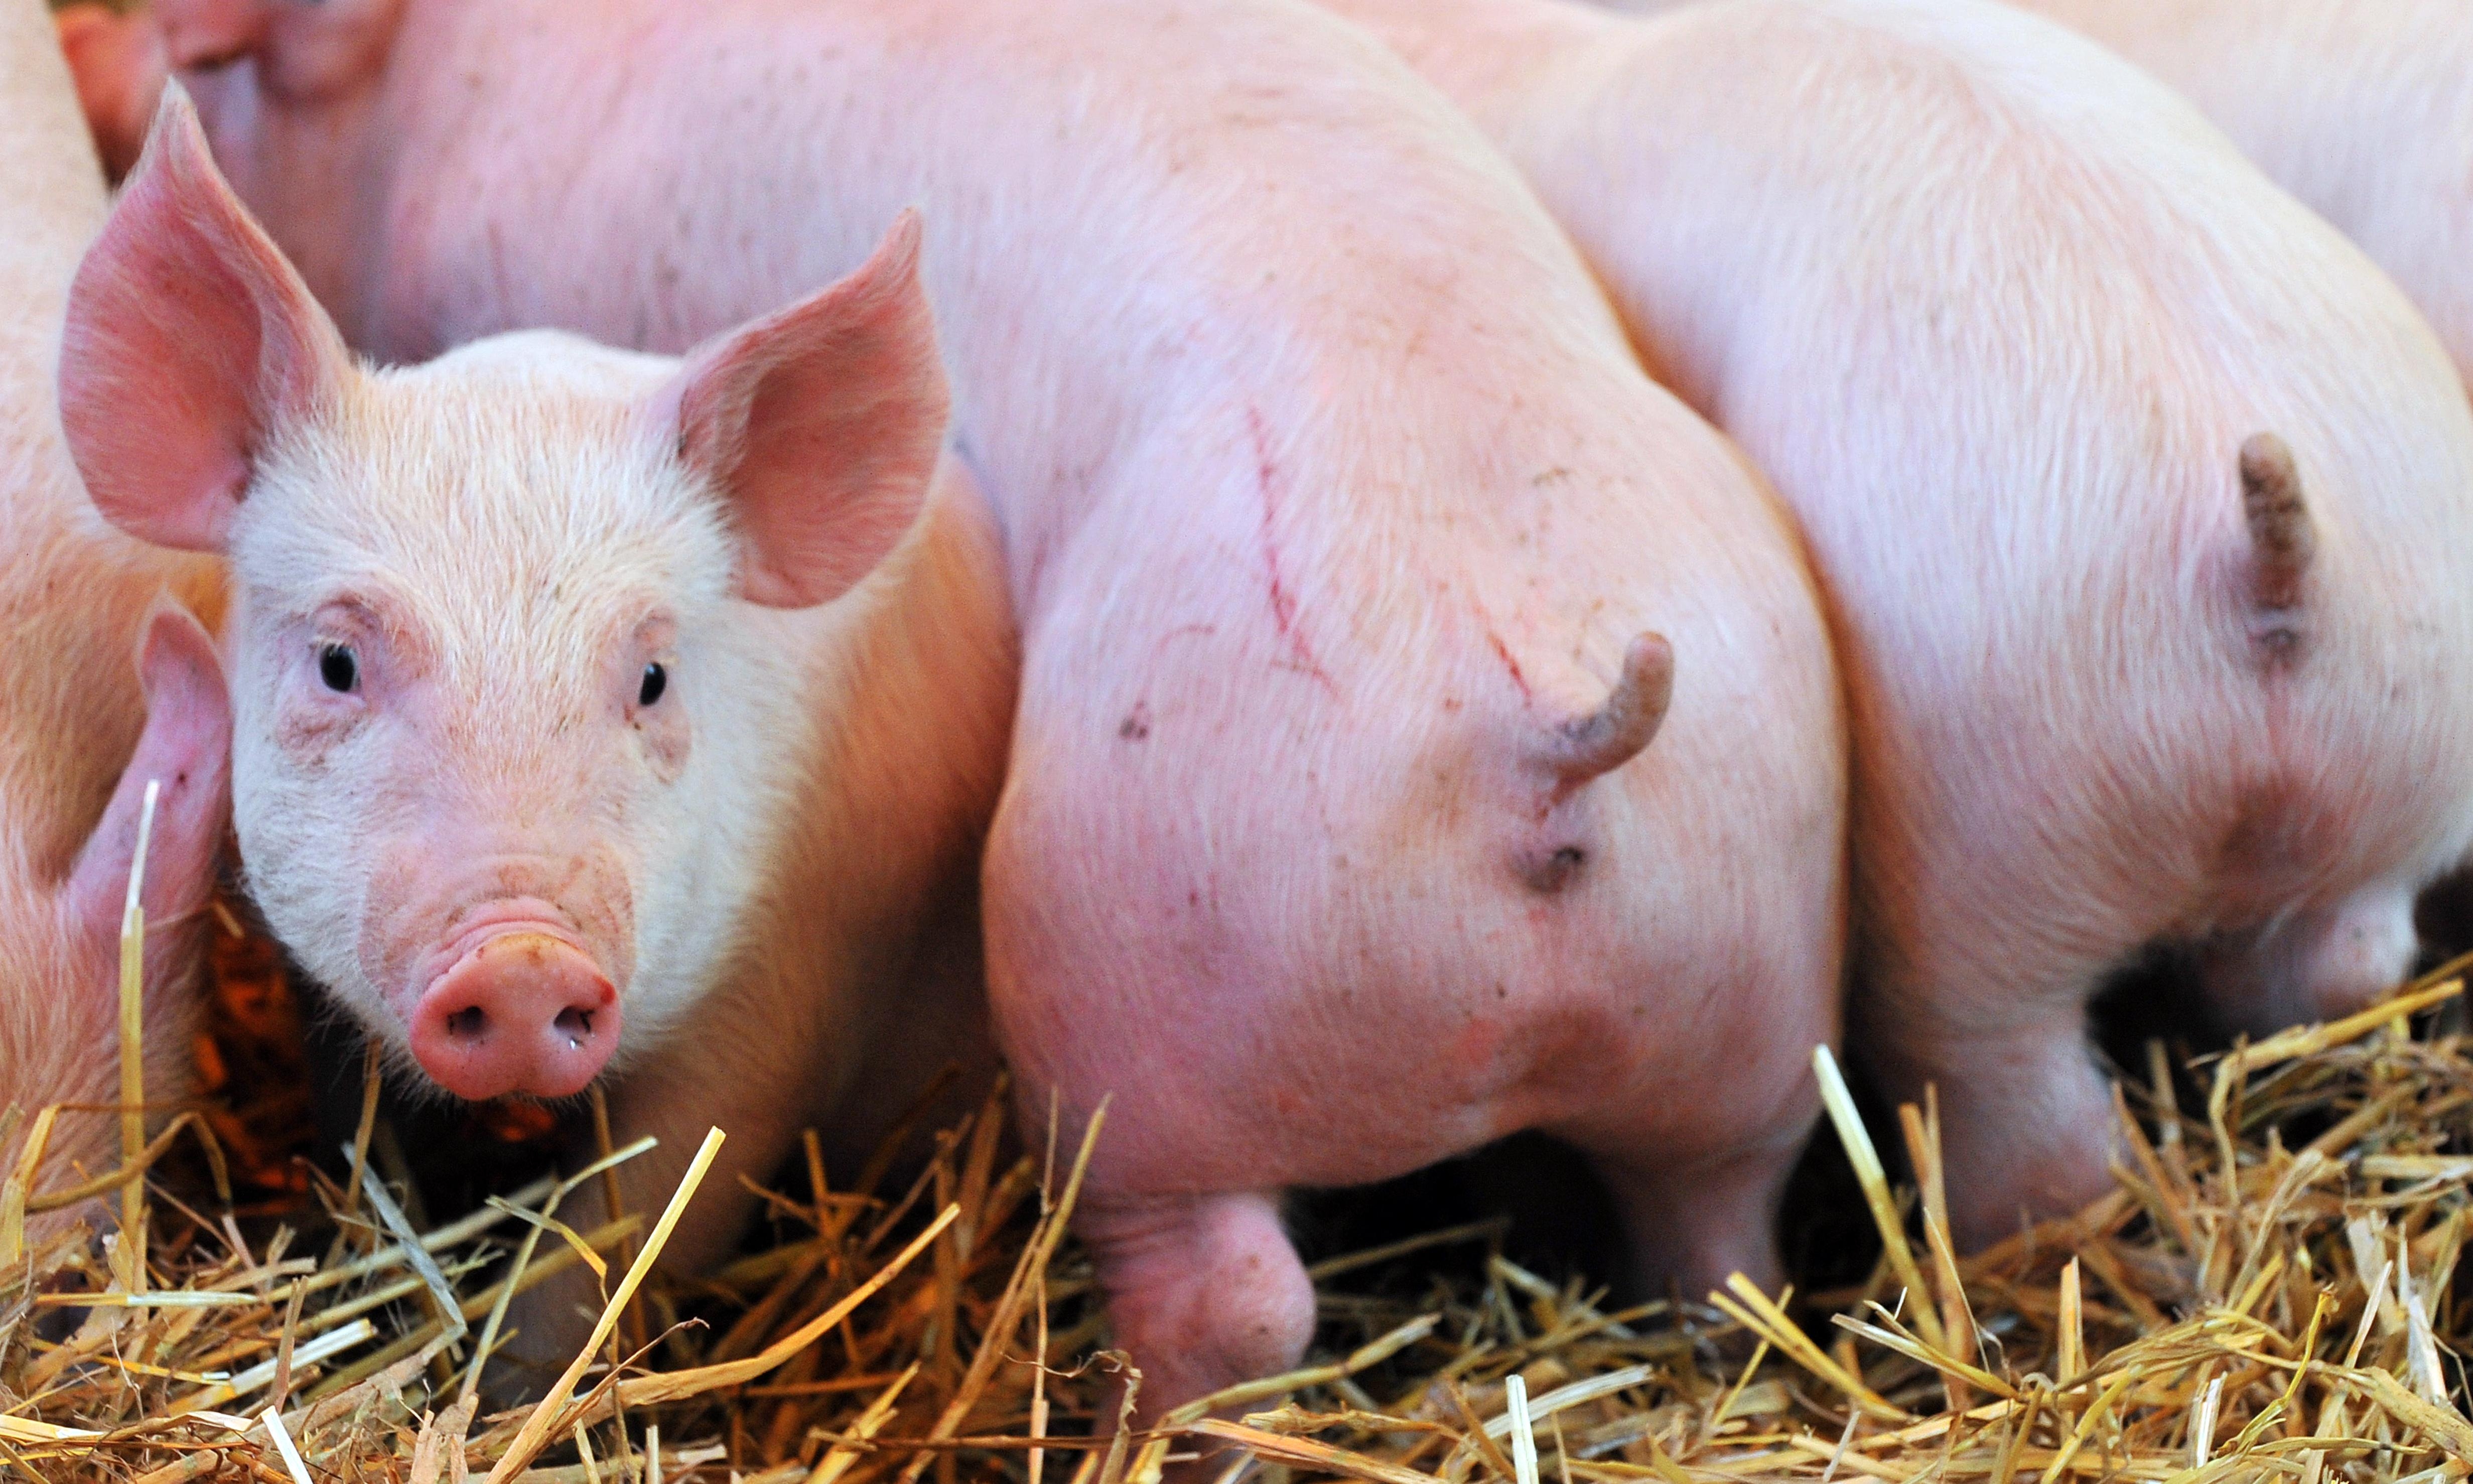 The curse of tail-docking: the painful truth about Italy's pigs